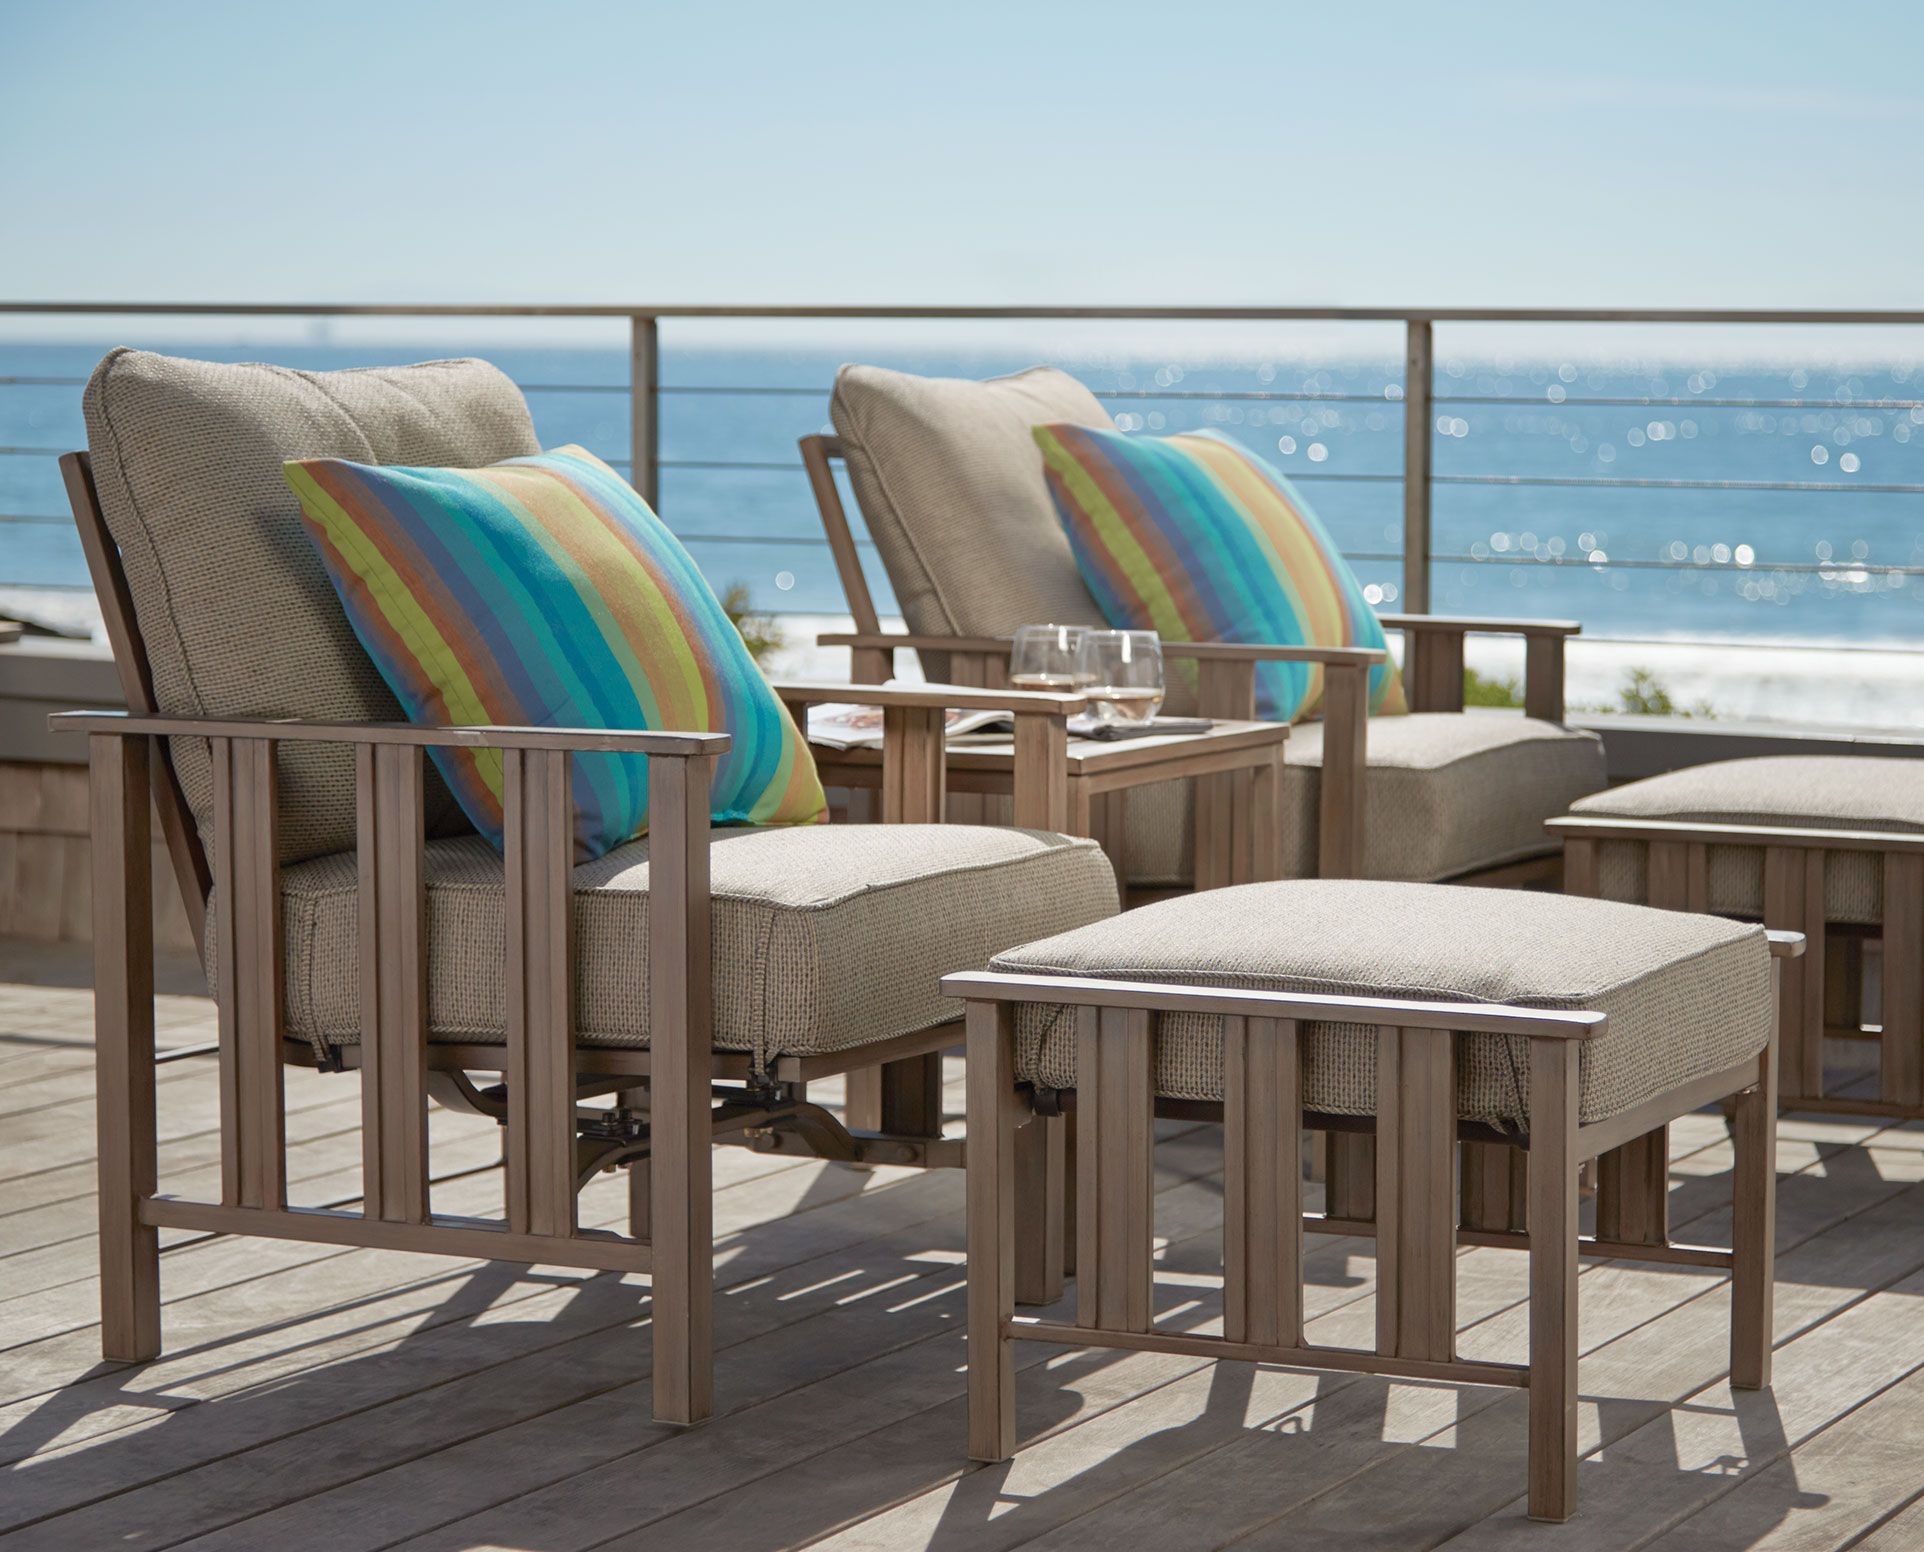 Orchard Supply Hardware Patio Furniture